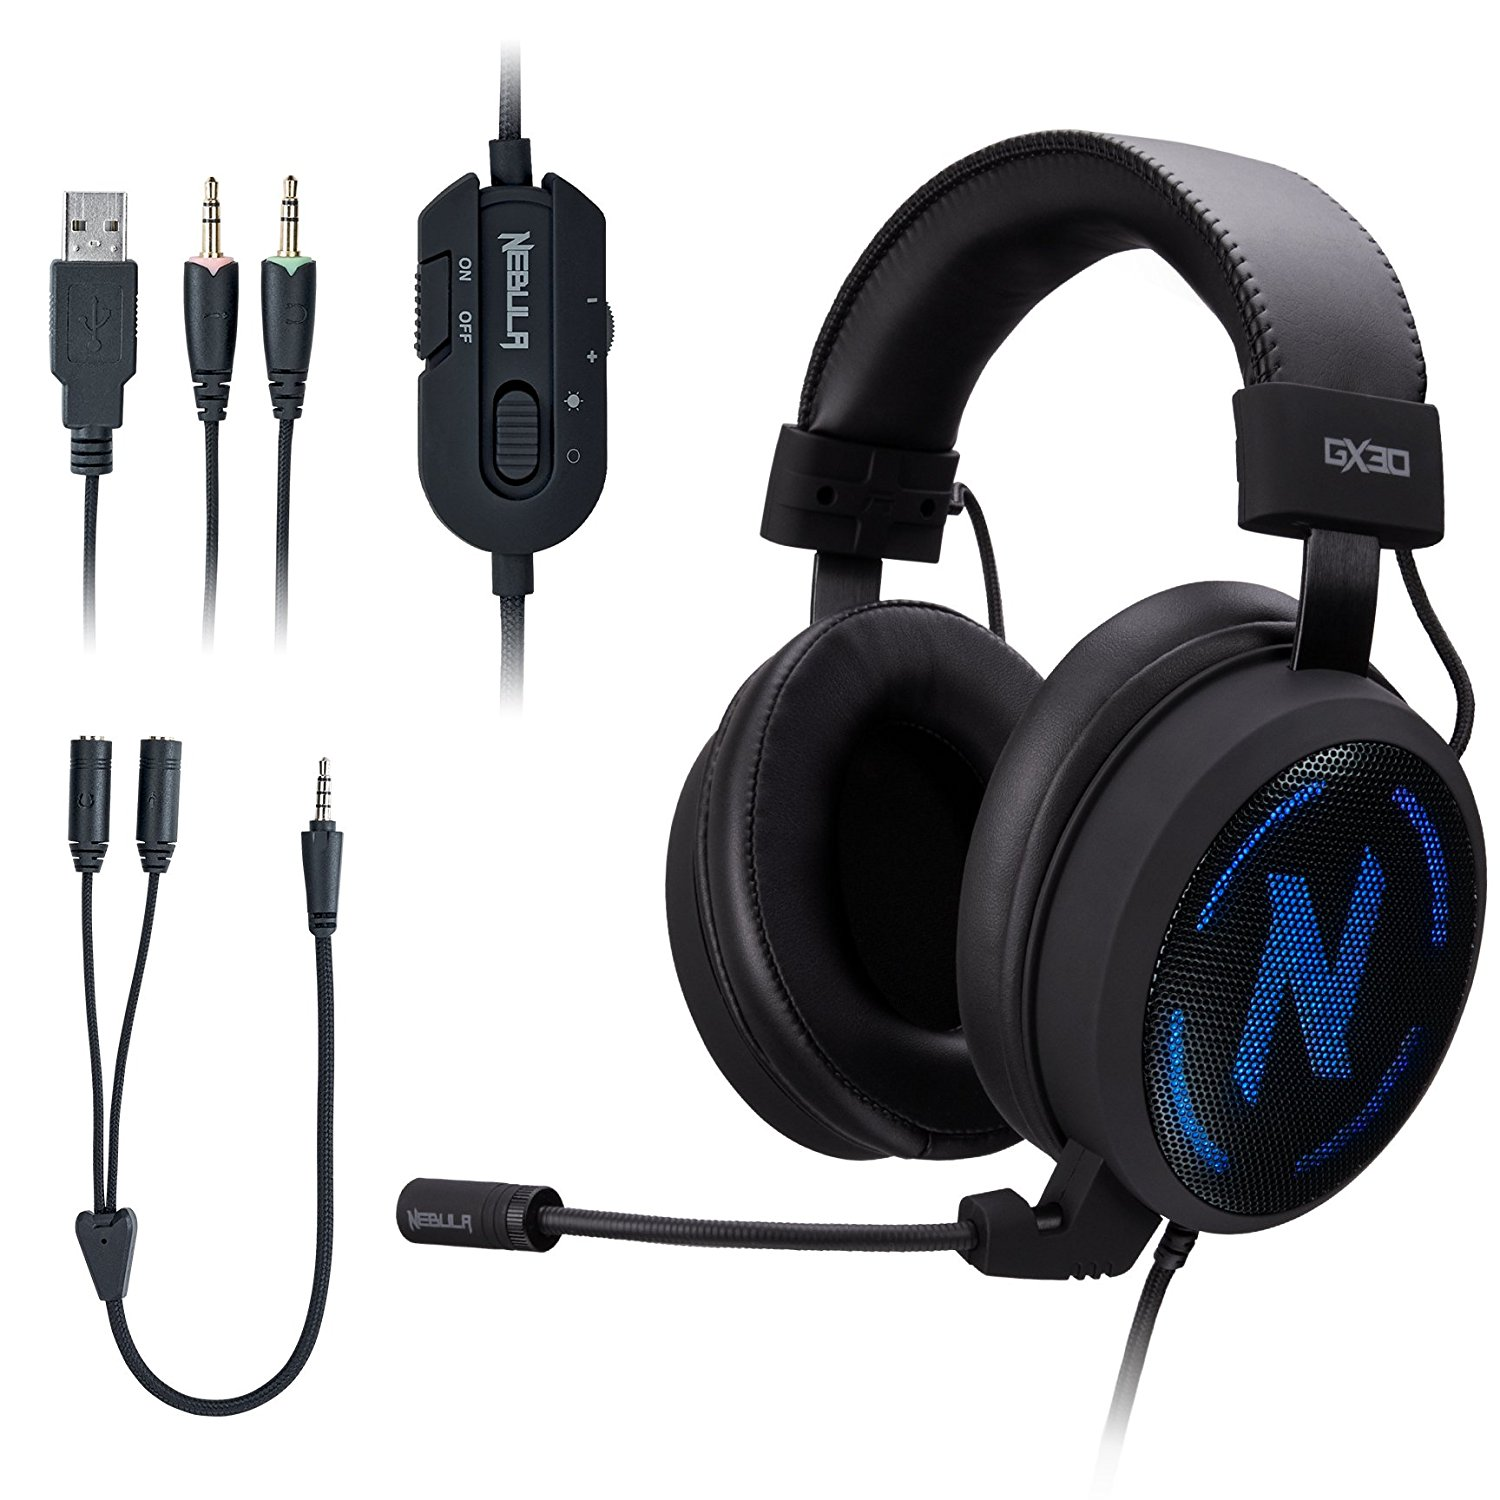 Sentey-gaming-headset-multicolor-arrow-71-usb-dac-7-rgb-led-colors.